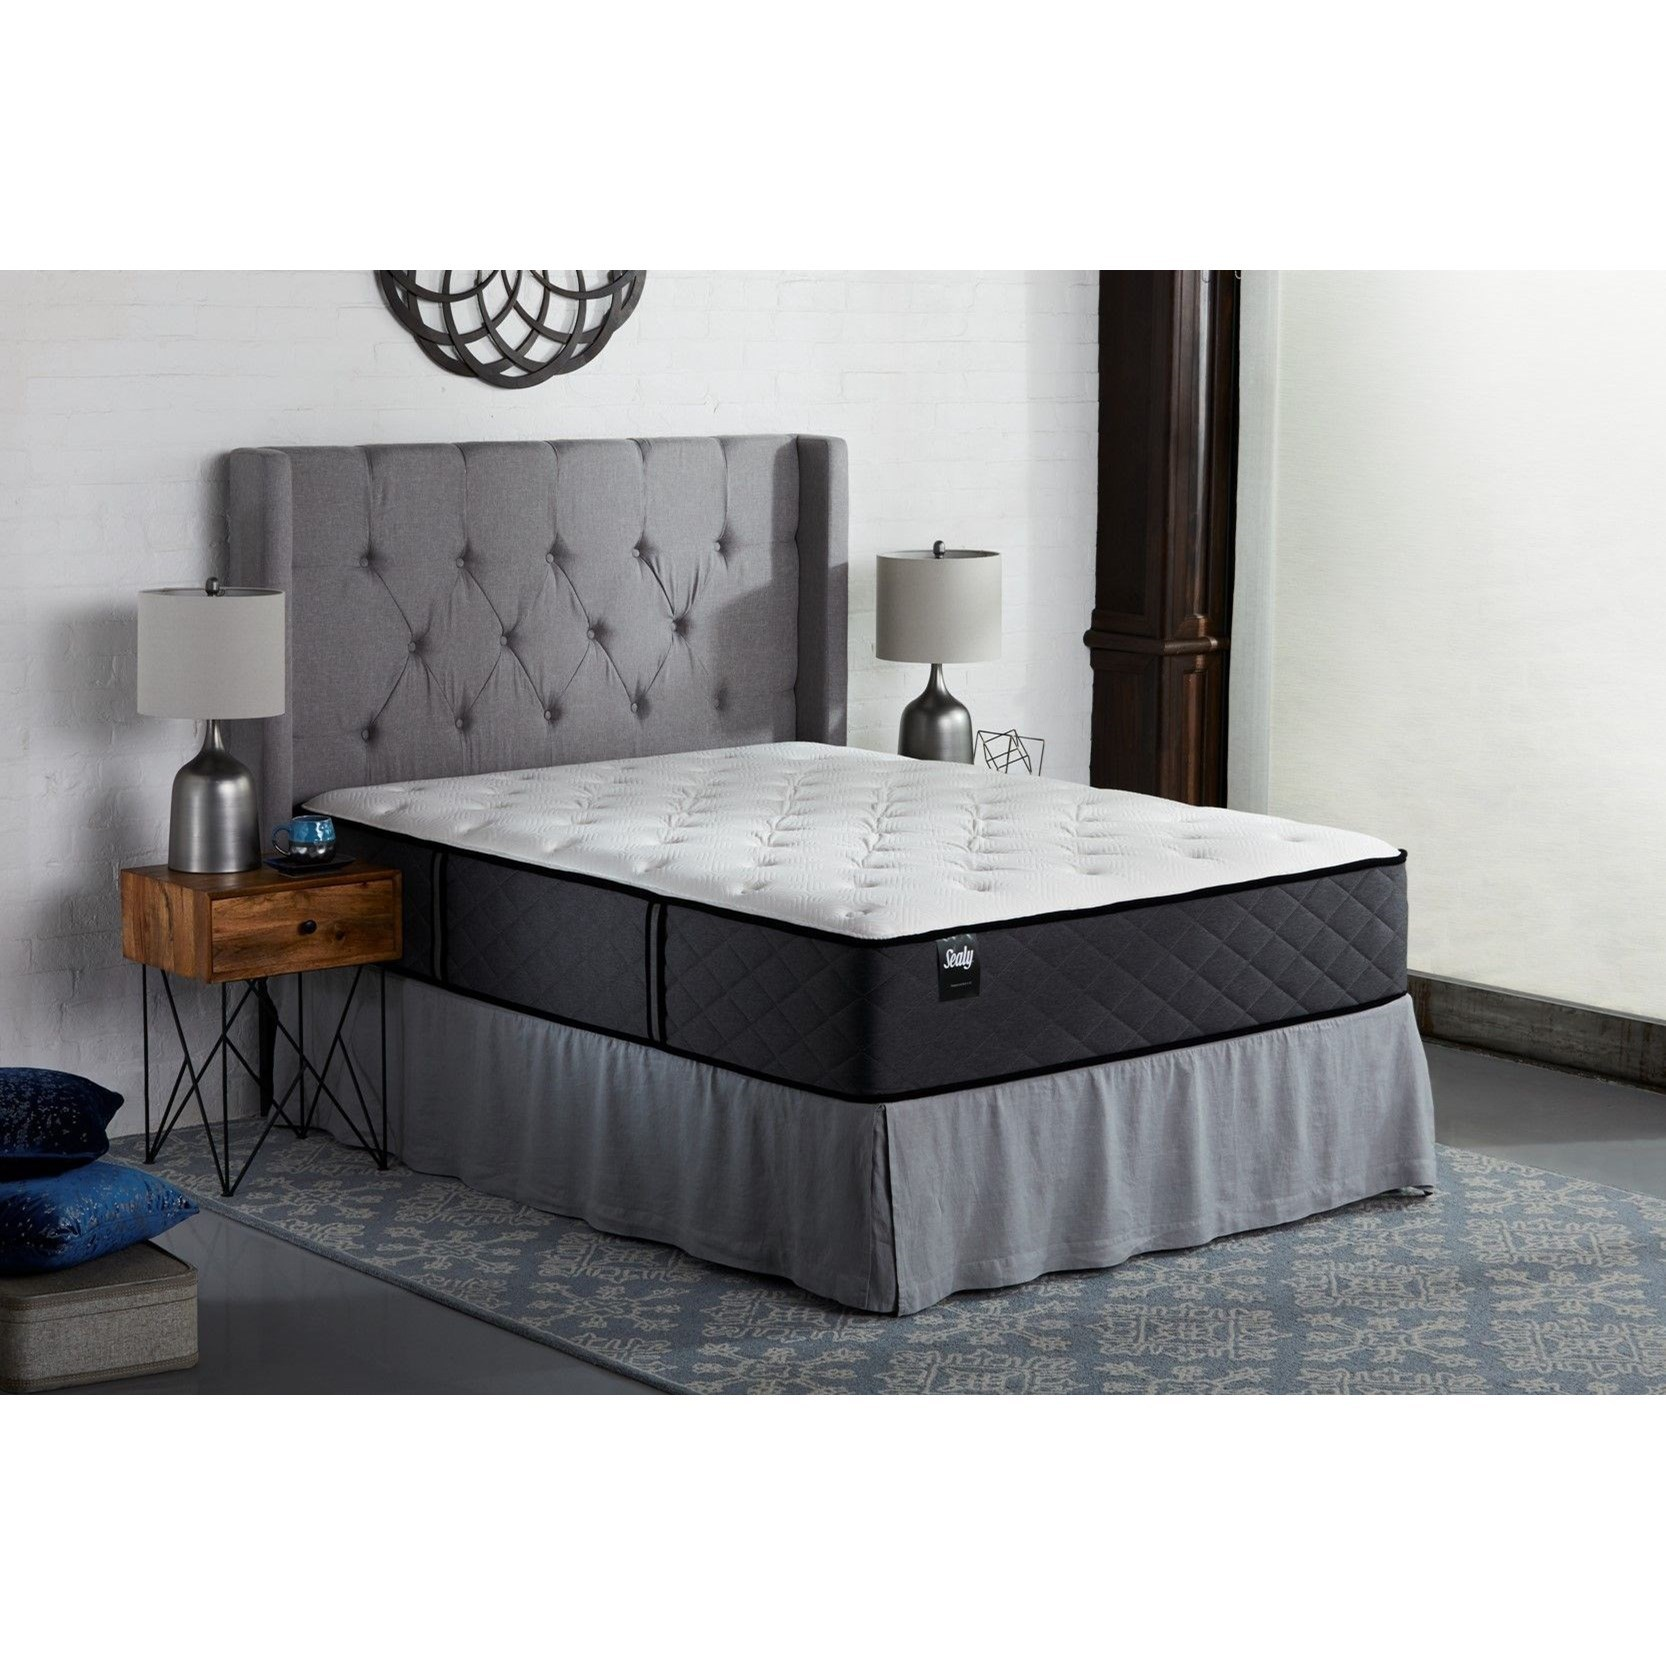 "S5 Firm TT Twin 14 1/2"" Firm Mattress Set by Sealy at Darvin Furniture"